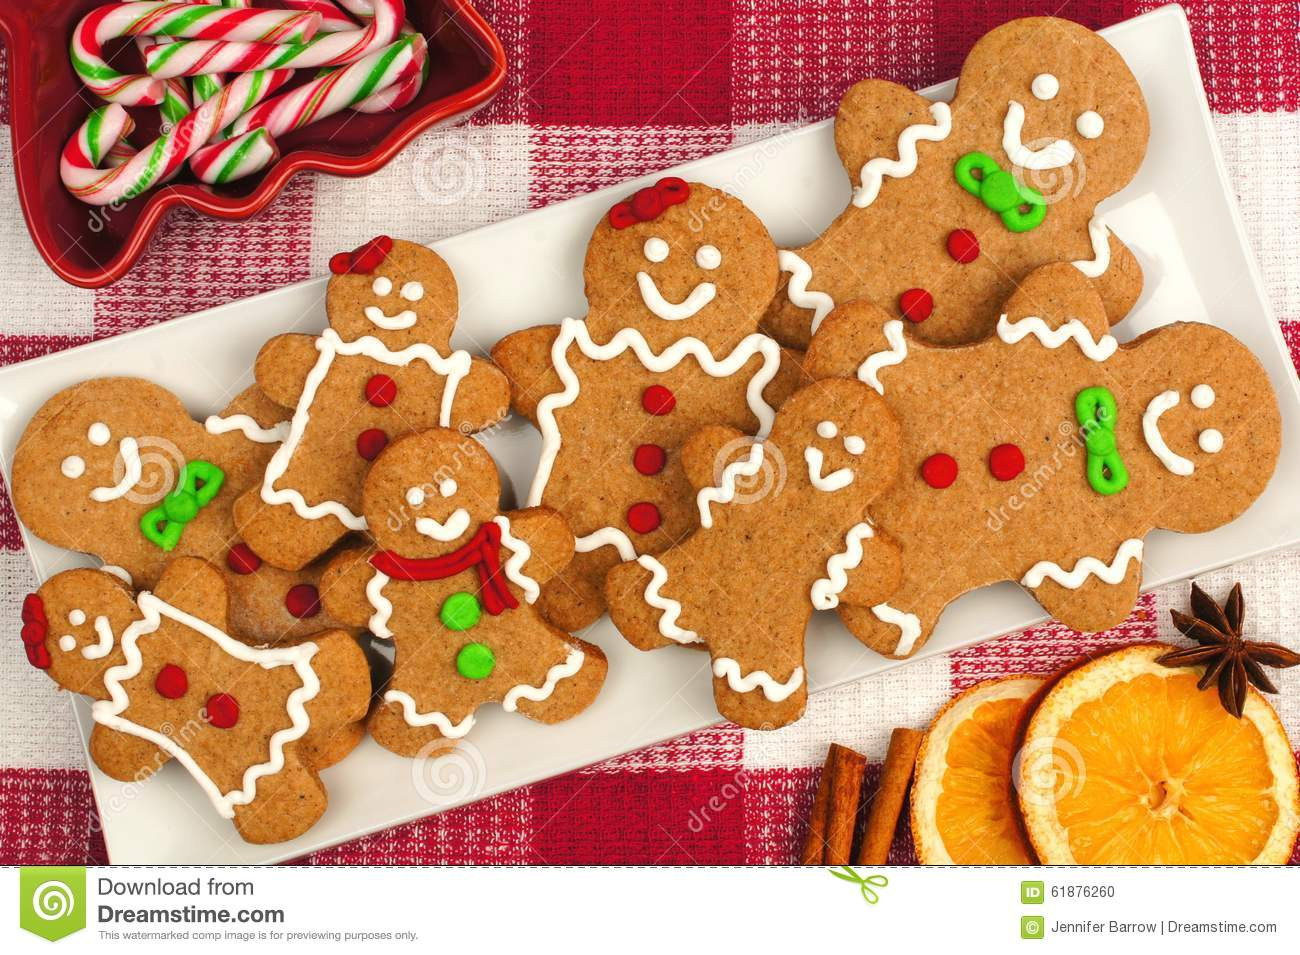 Christmas Gingerbread Man Cookies On Plate With Checkered